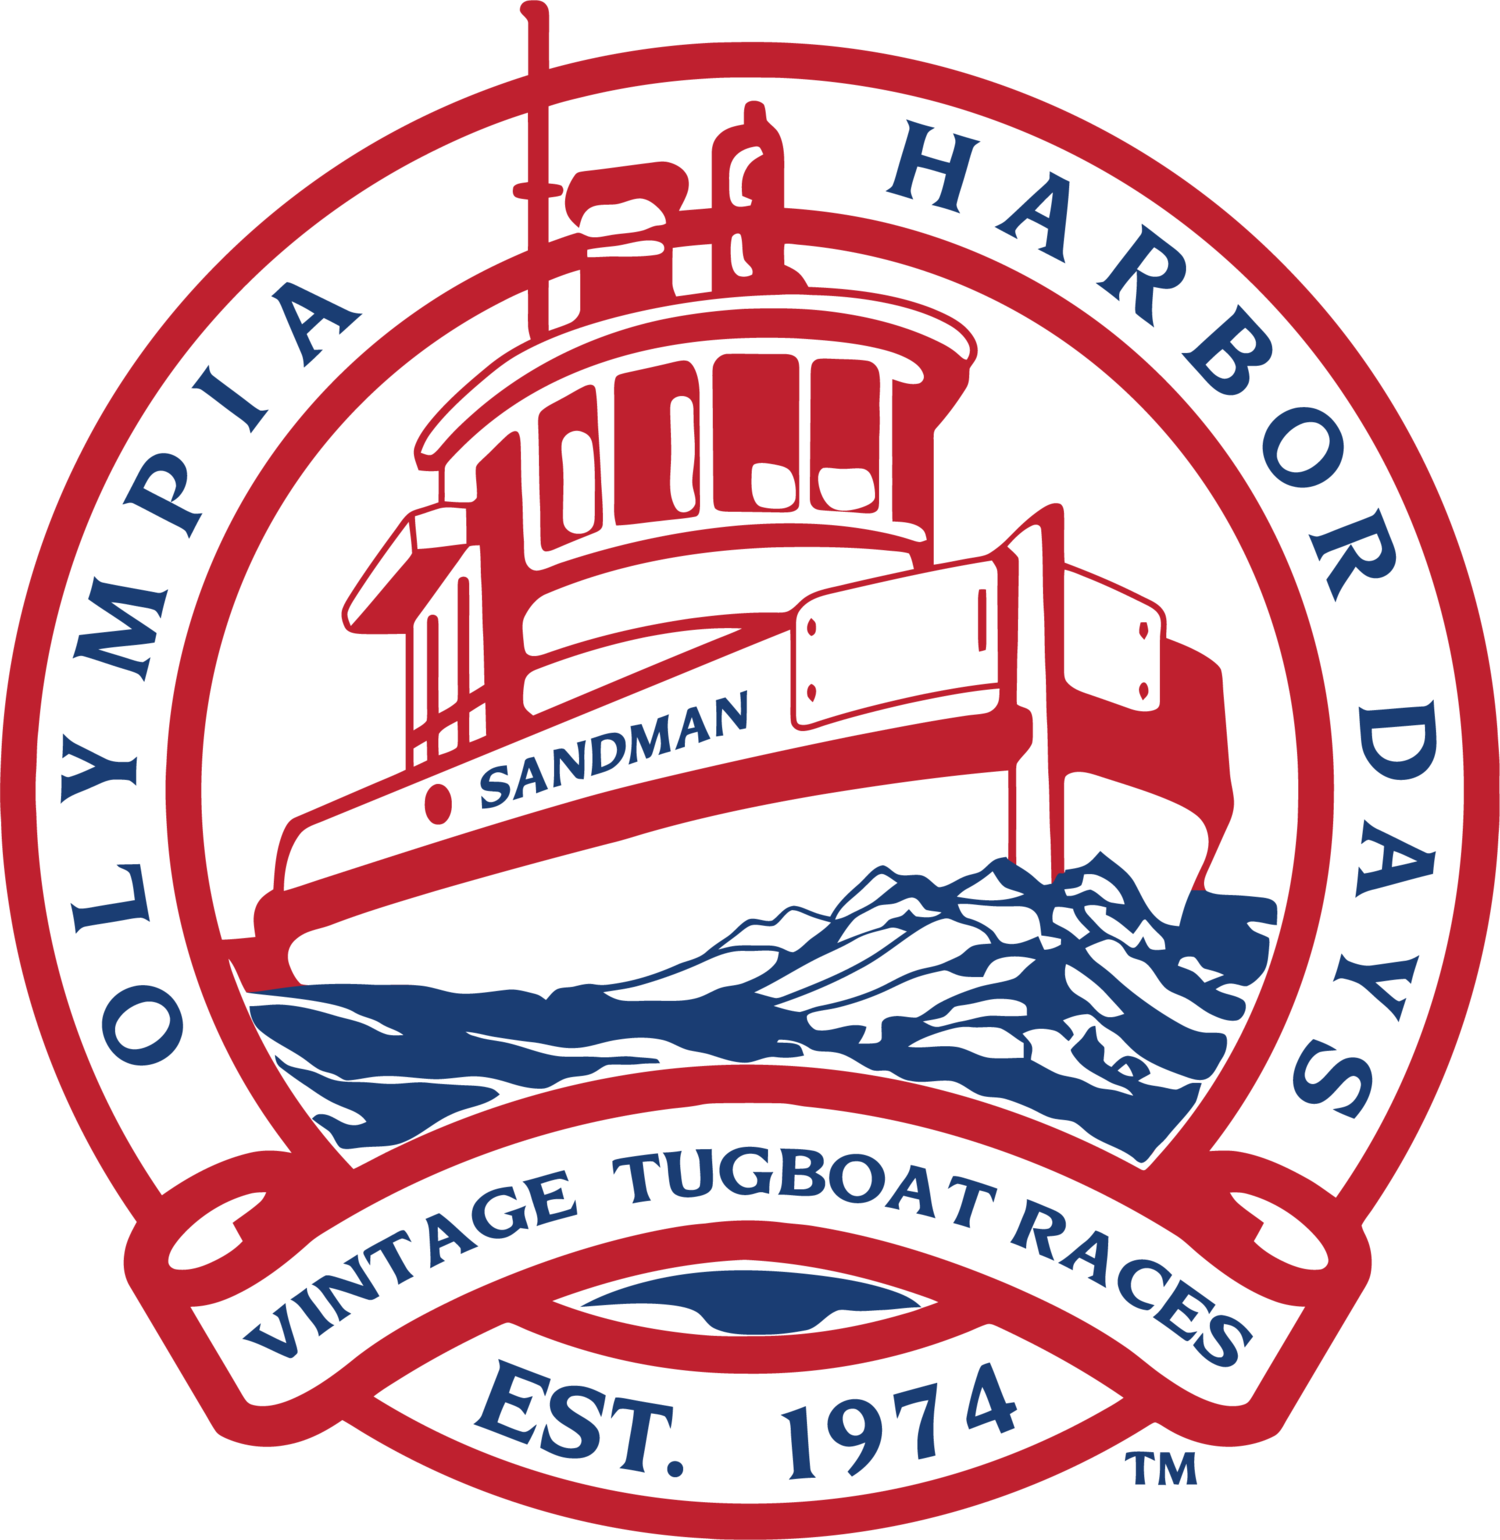 Olympia Harbor Days | 3-Day Festival Featuring the World's Largest Vintage Tugboat Races!